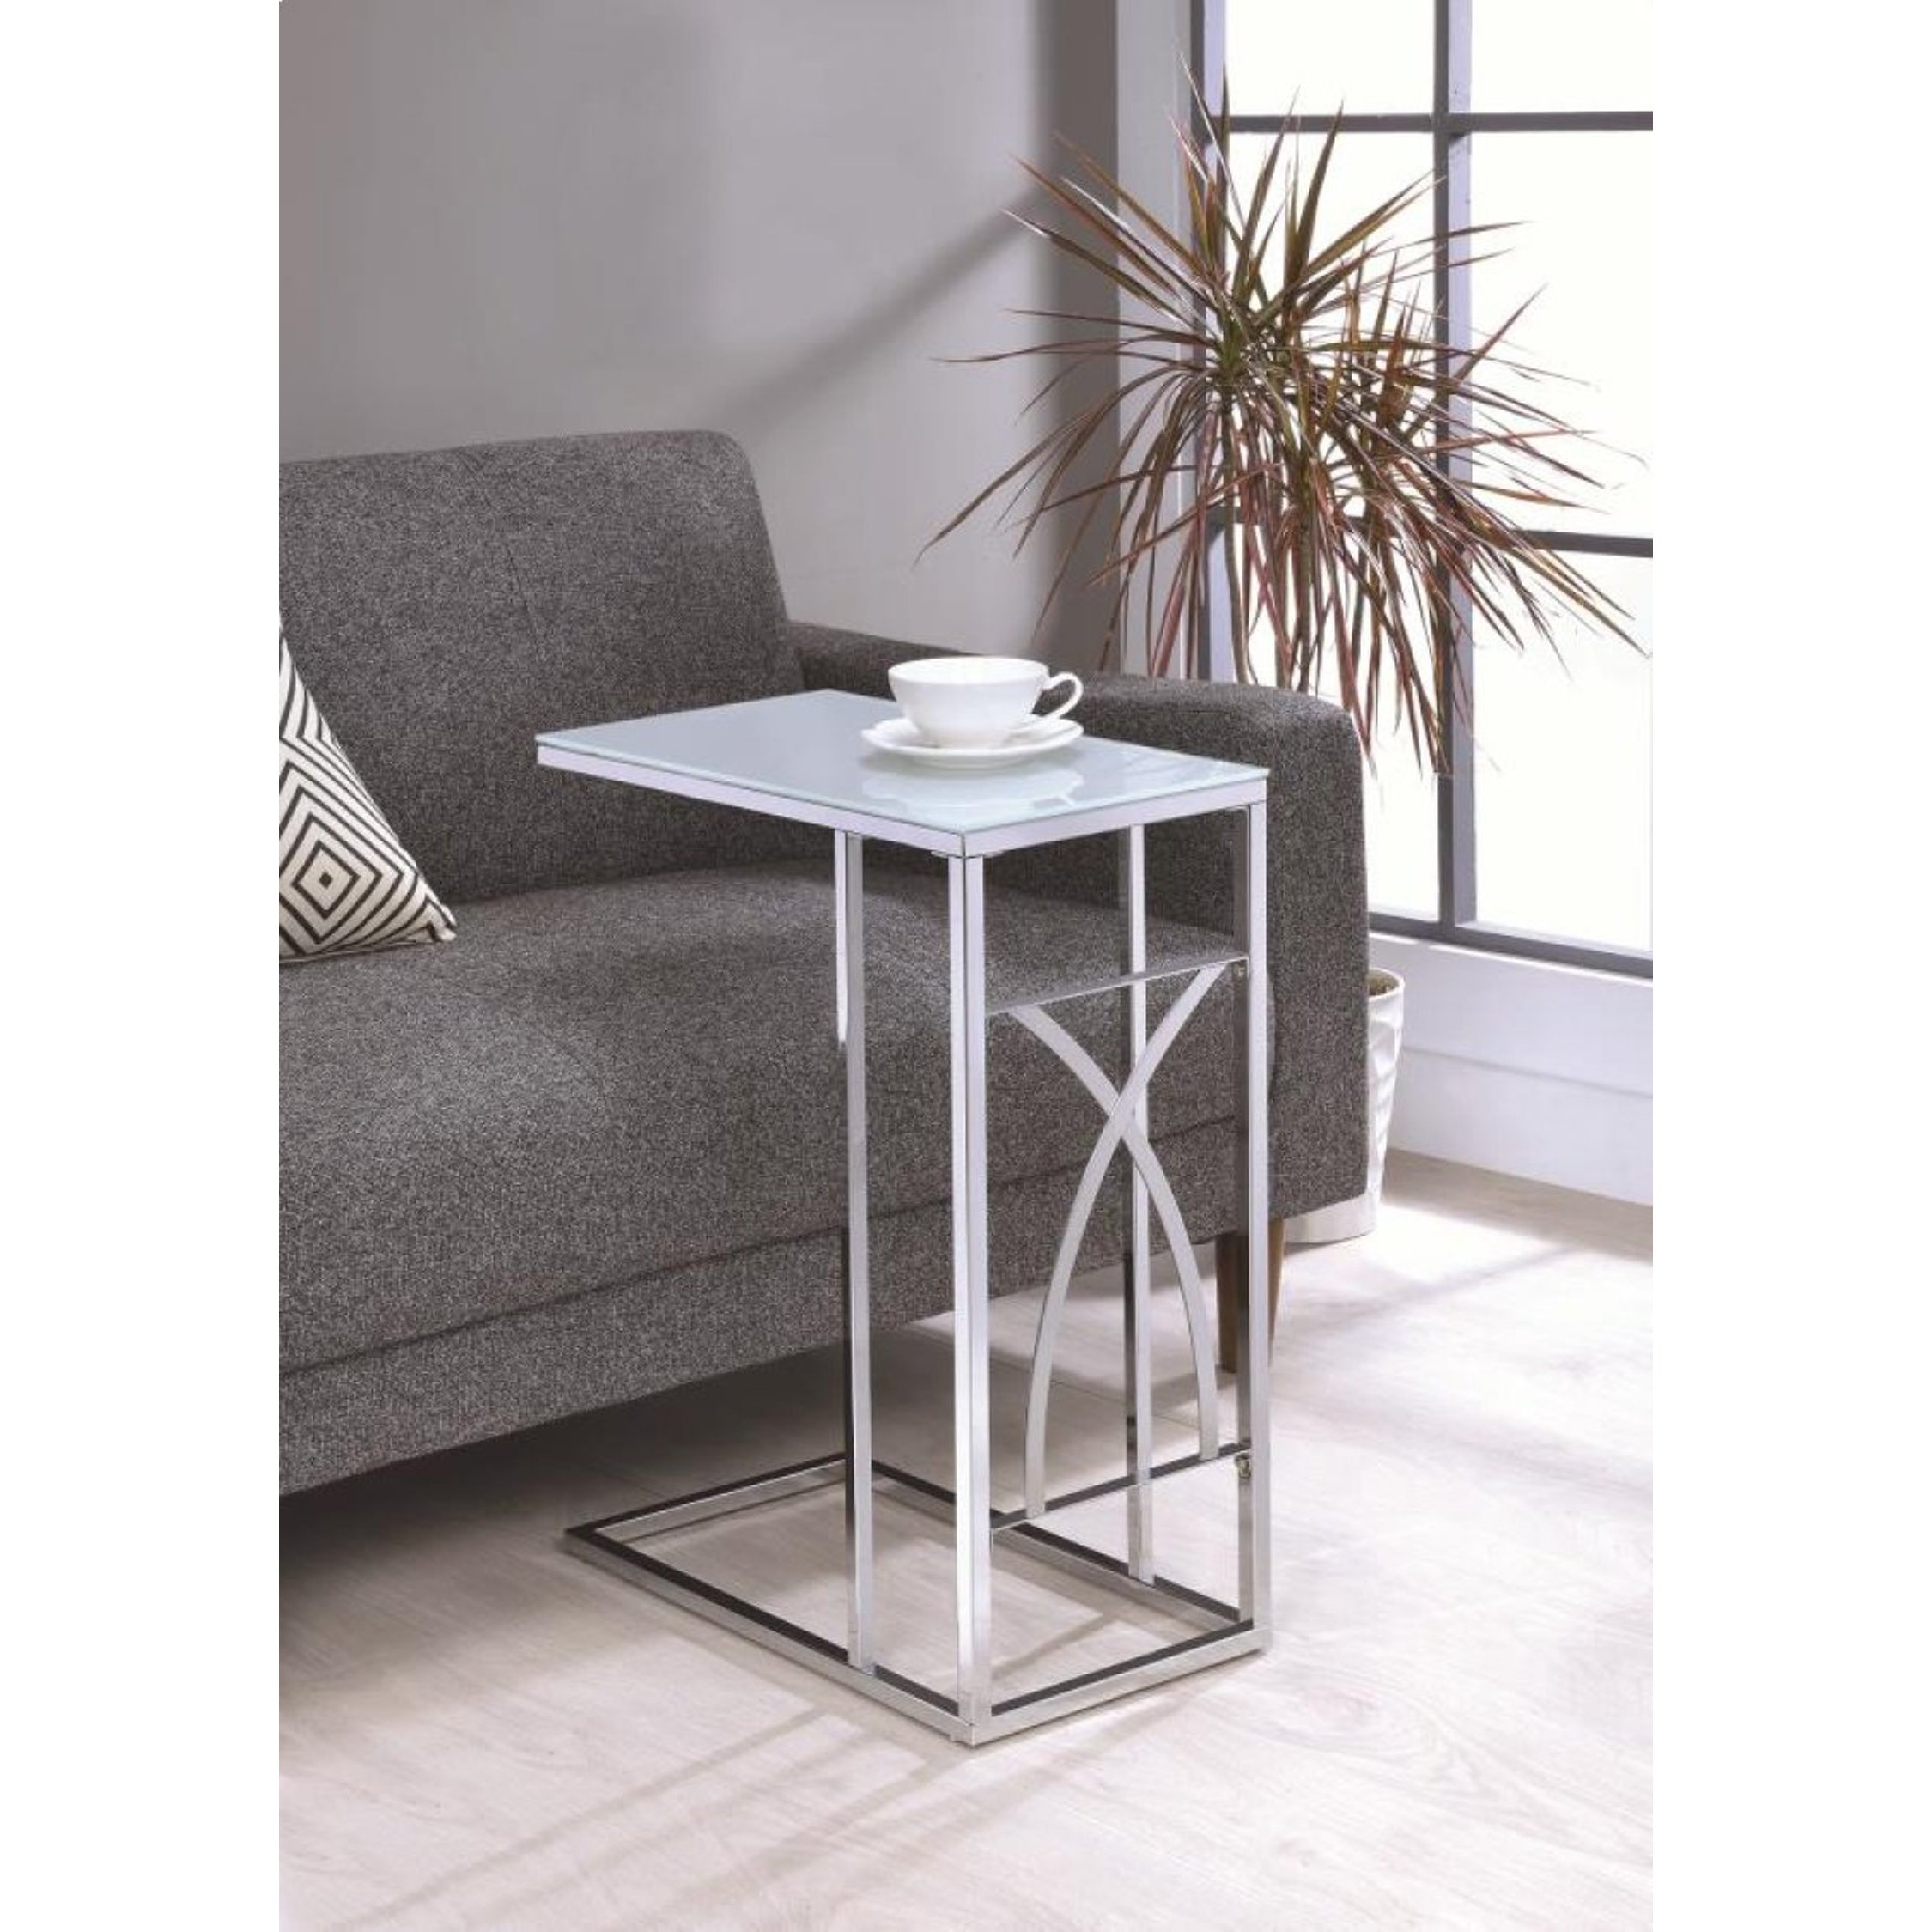 modern design living room chrome accent snack table with frosted tempered glass top free shipping today marble coffee wooden legs and black silver sauder storage cabinet inch high